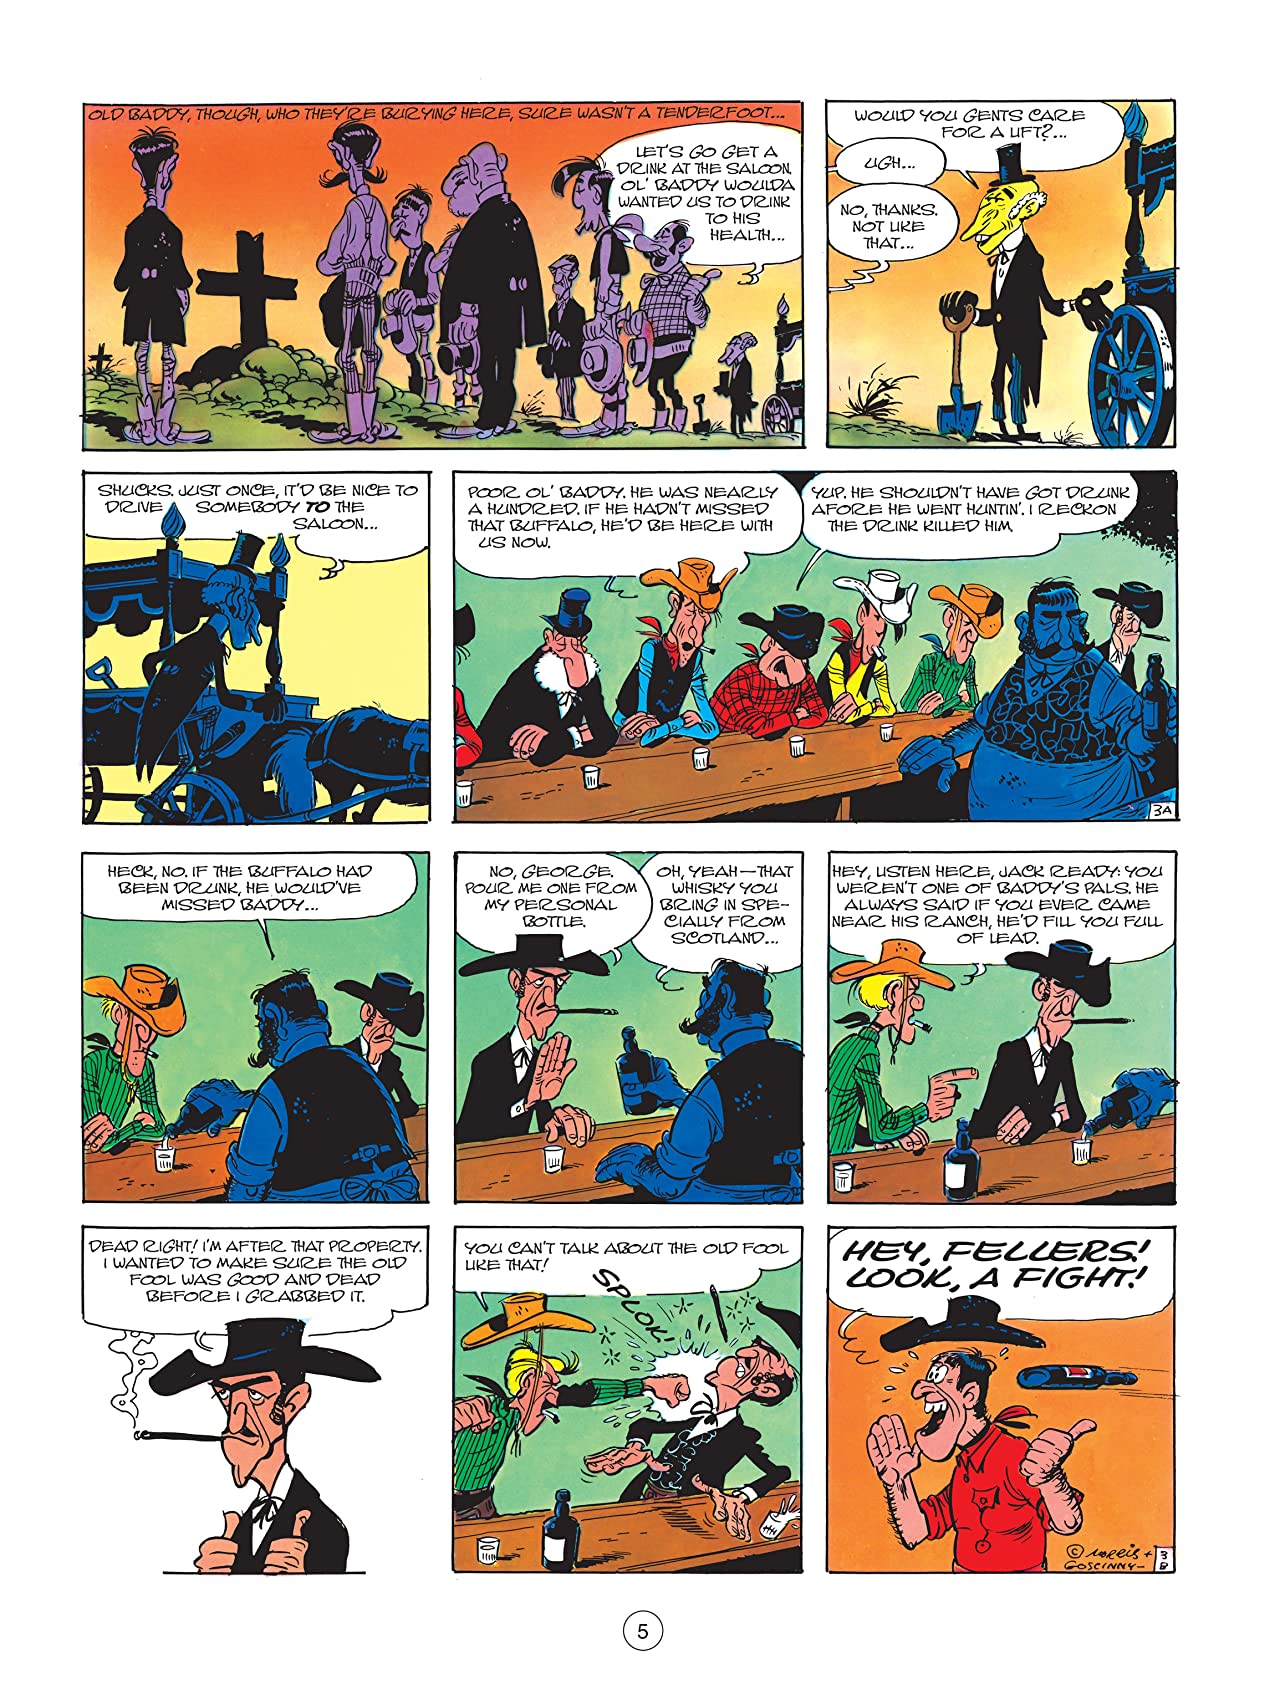 Lucky Luke Vol. 13: The Tenderfoot